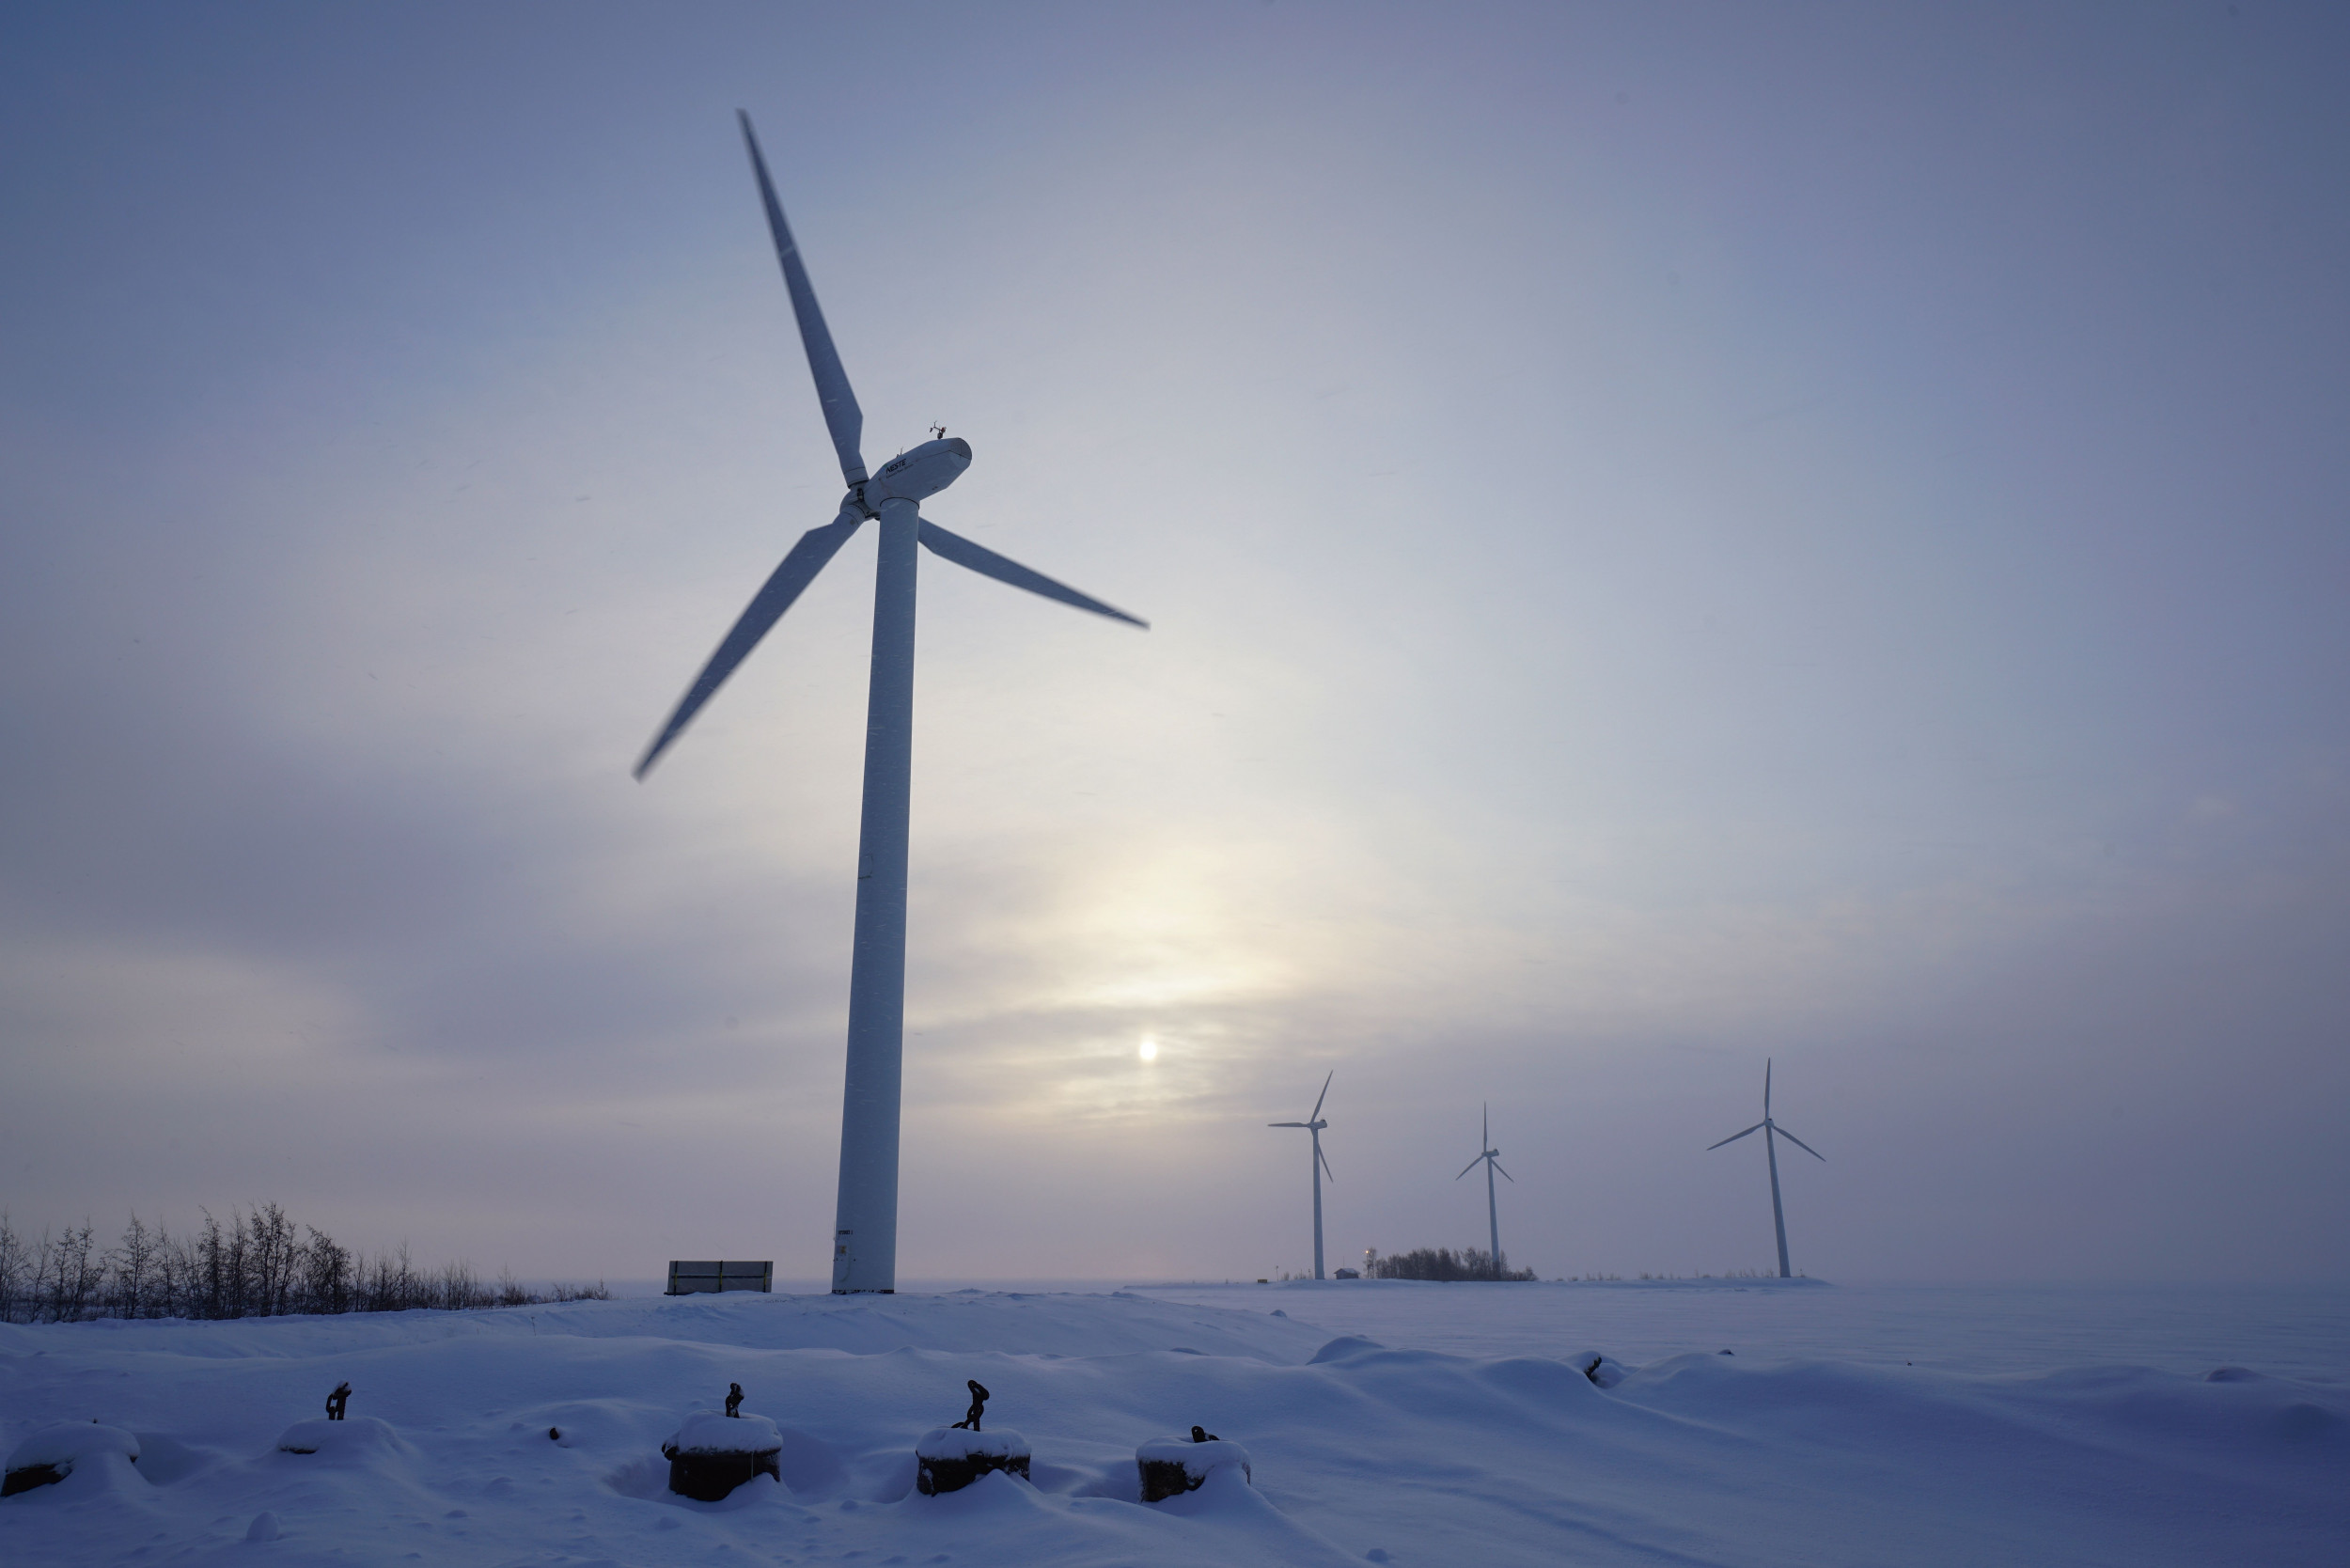 Why did wind turbines freeze in Texas when they work in the Arctic?